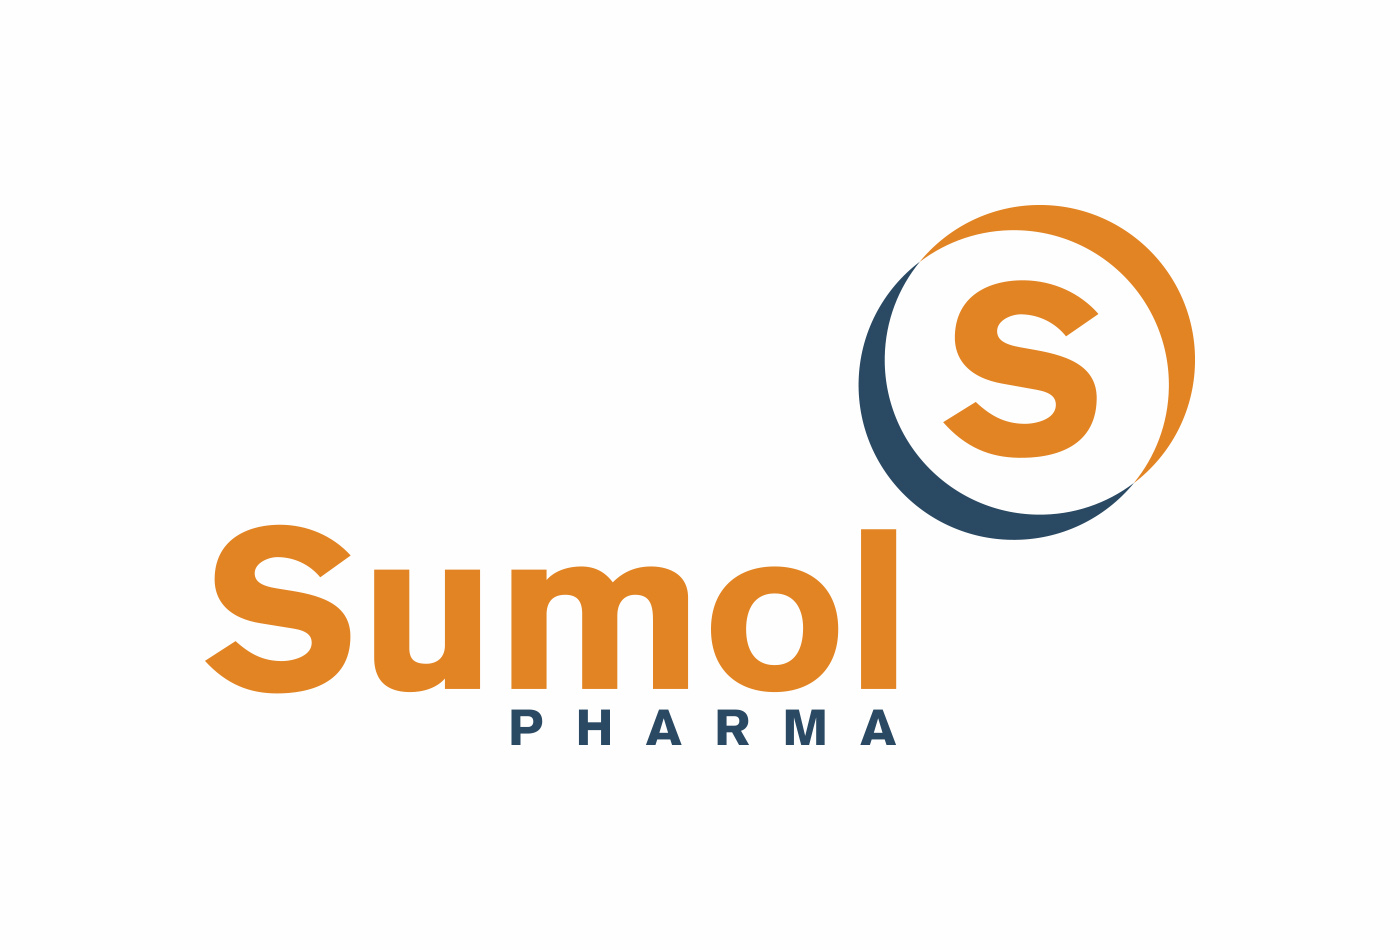 logotip-sumol-pharma